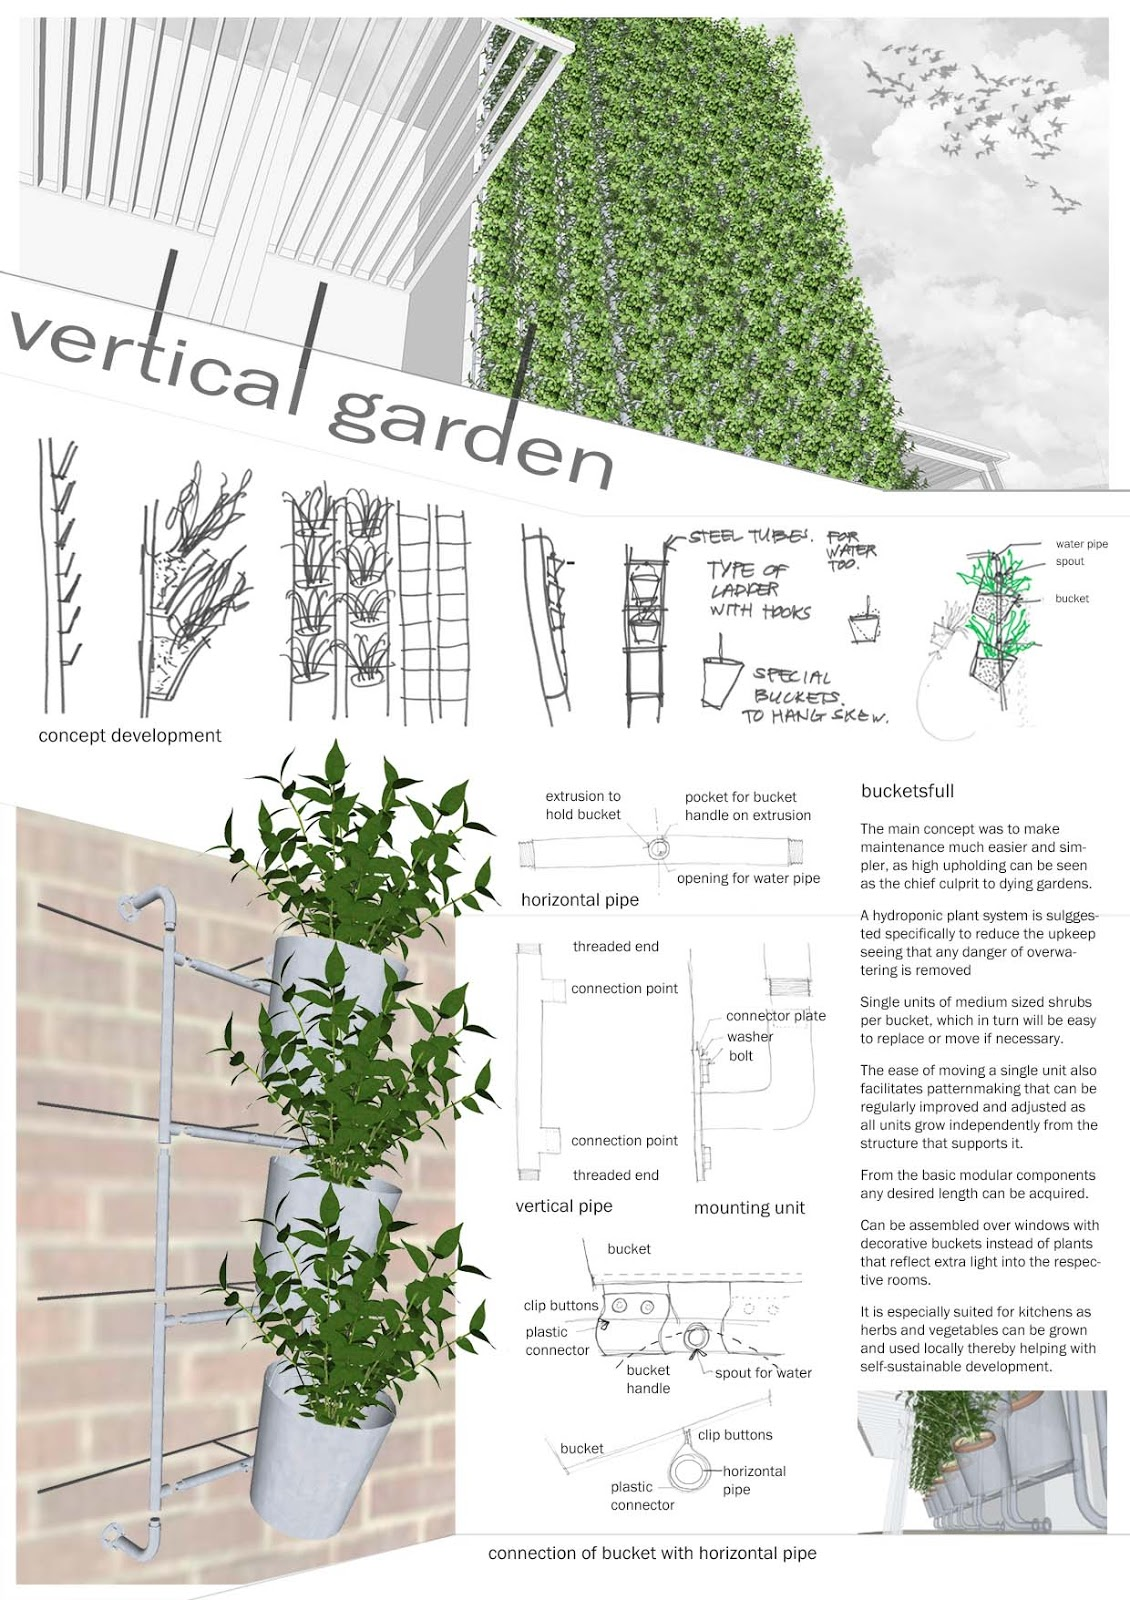 daniel de koning university portfolio vertical garden system. Black Bedroom Furniture Sets. Home Design Ideas